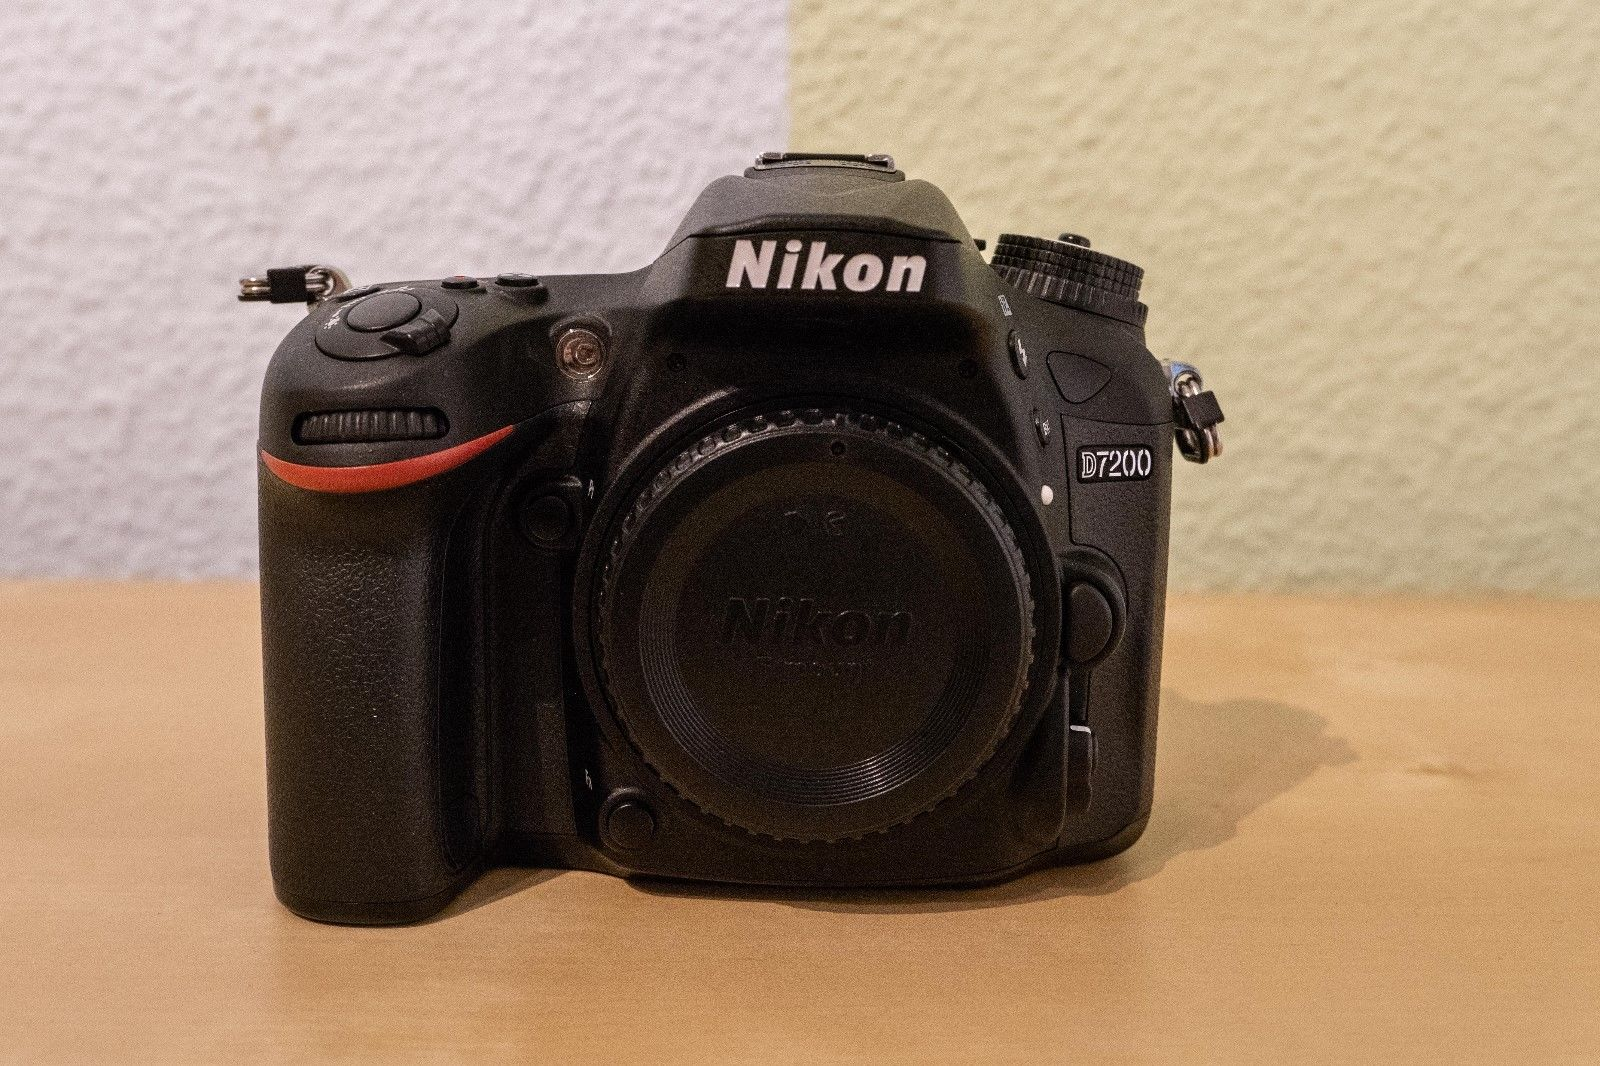 Nikon D7200 24.2 MP SLR-Digitalkamera Body OVP